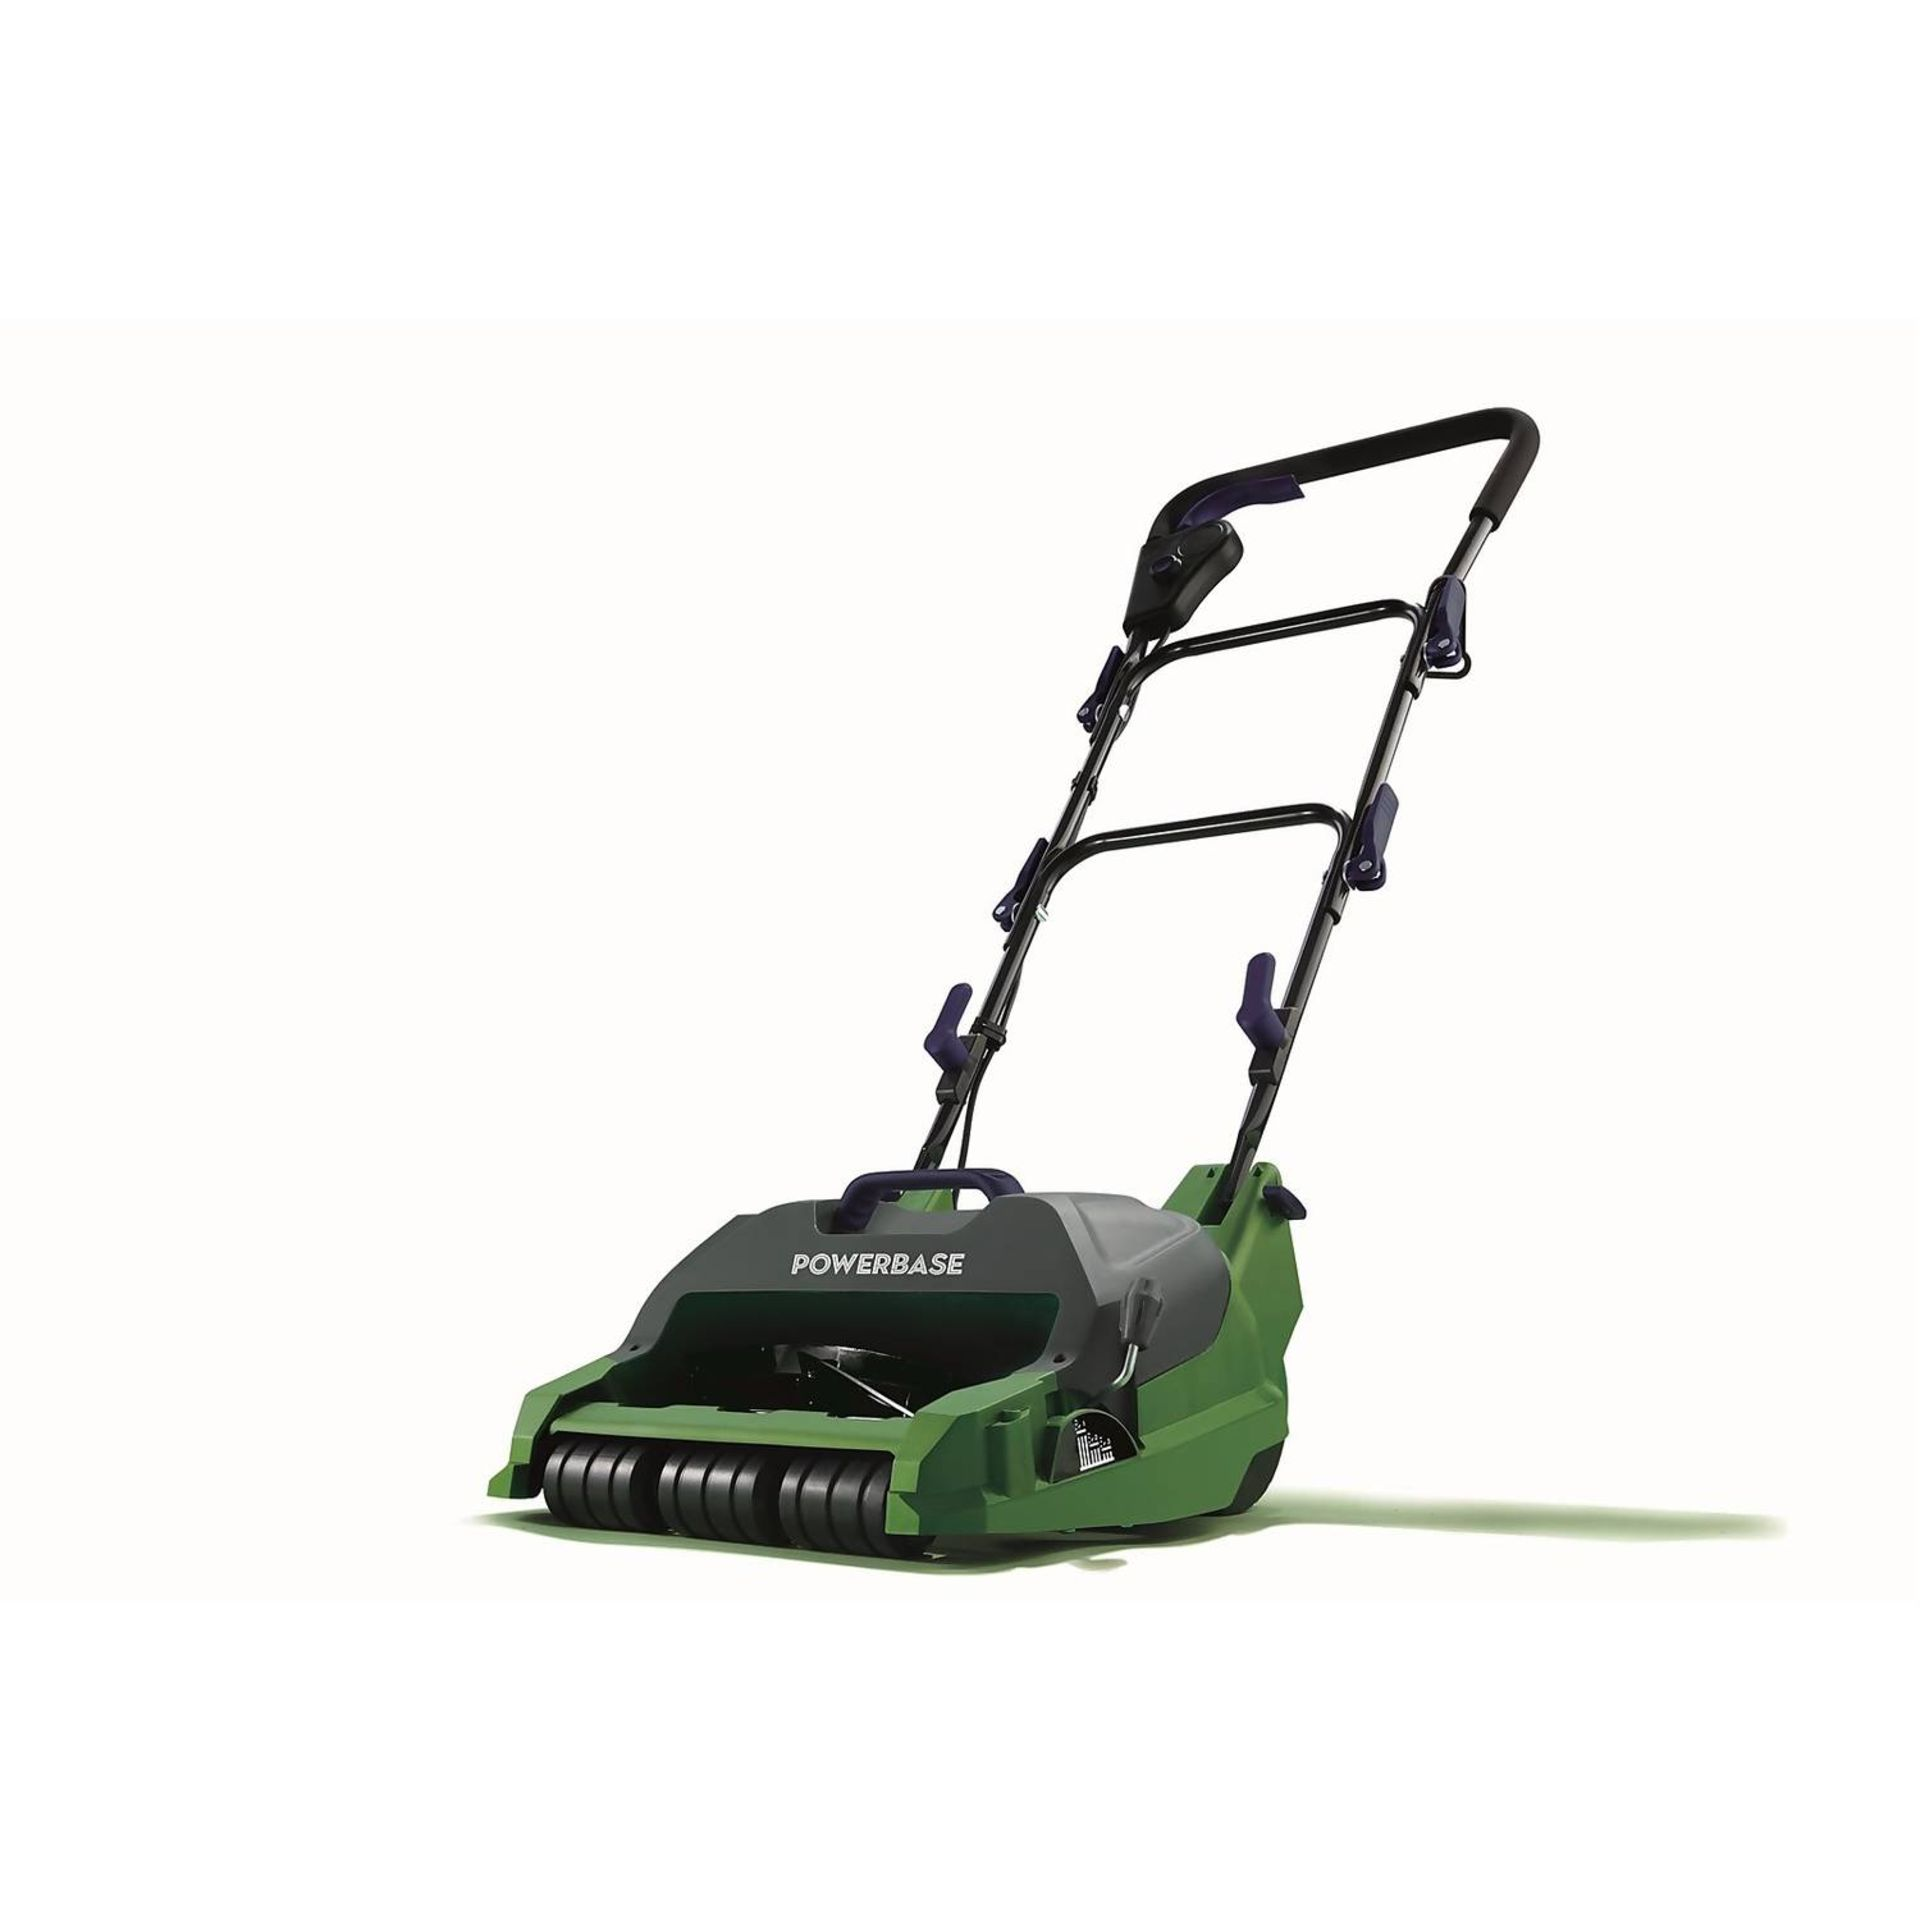 (P6) 1x Powerbase 32cm 400W Electric Cylinder Lawn Mower RRP £89. New, Sealed Item. (Undelivered R